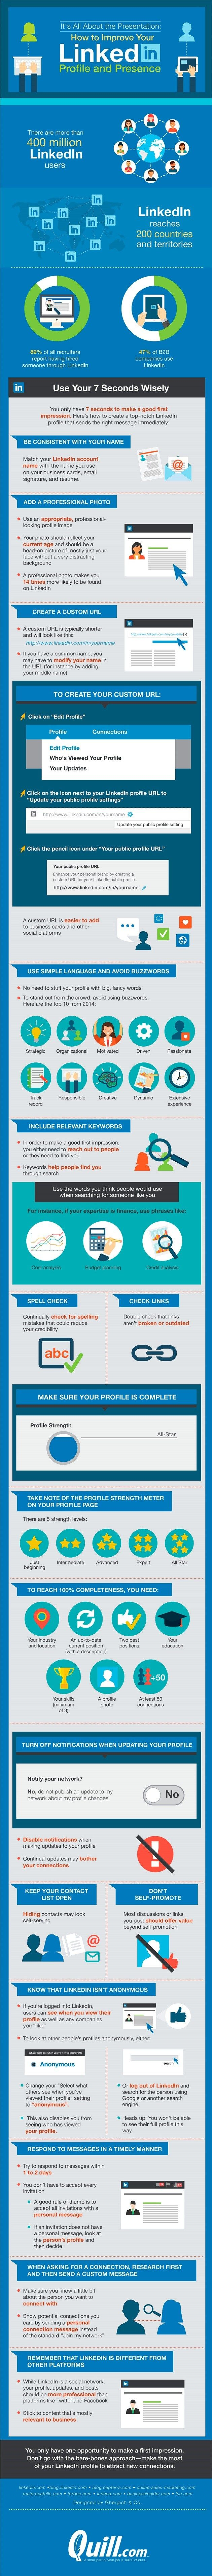 Make sure your LinkedIn profile shines above the rest by following the tips in this infographic.